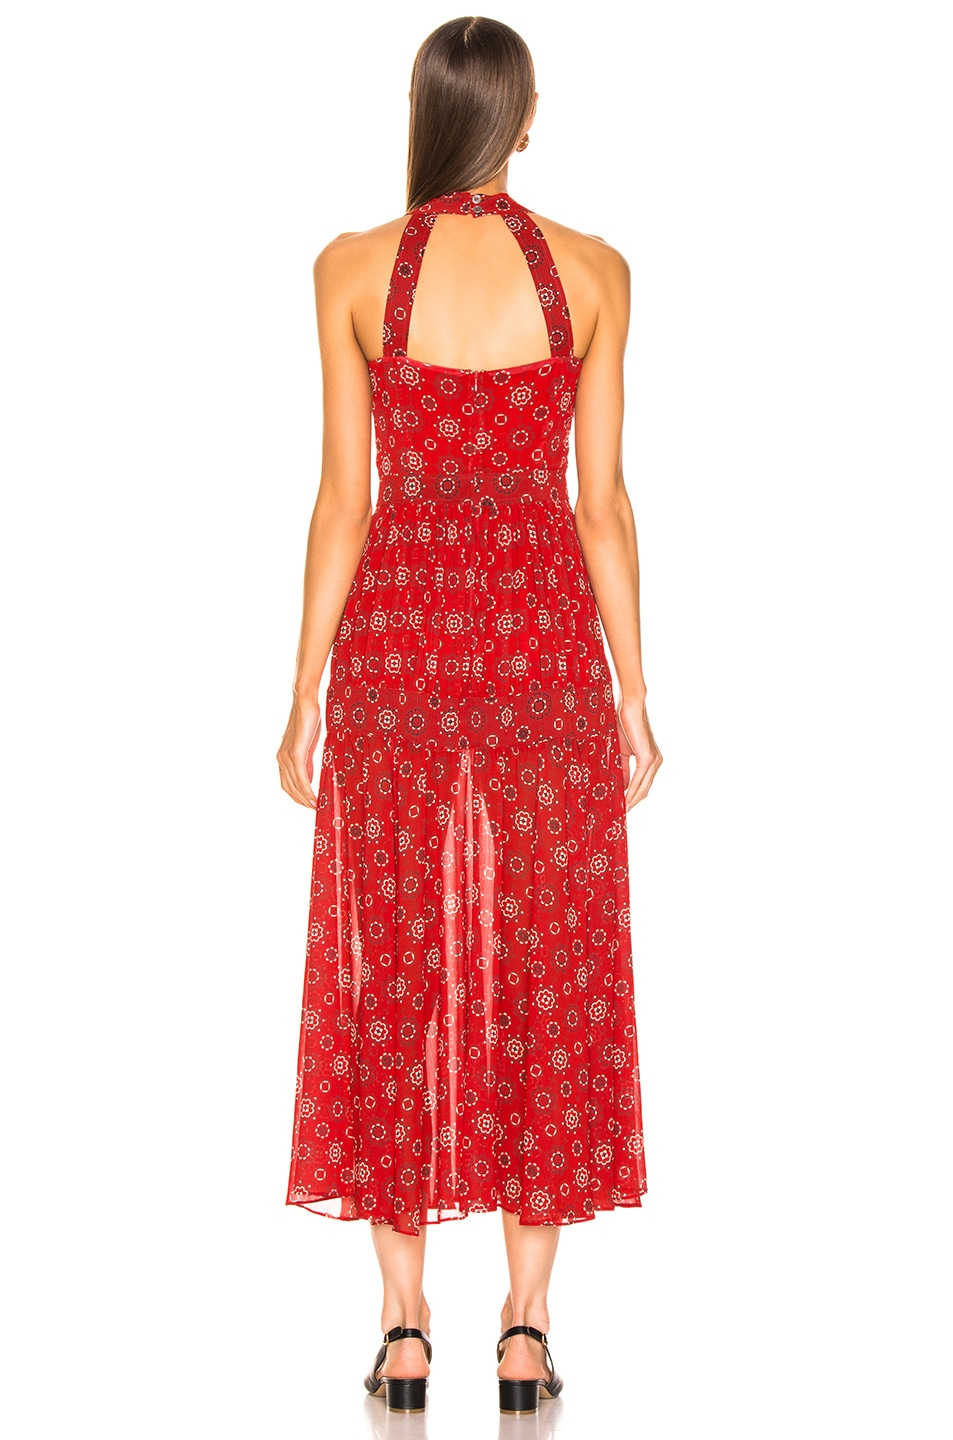 Image 3 of Marissa Webb Seraphina Print Dress in Moroccan Tile Red